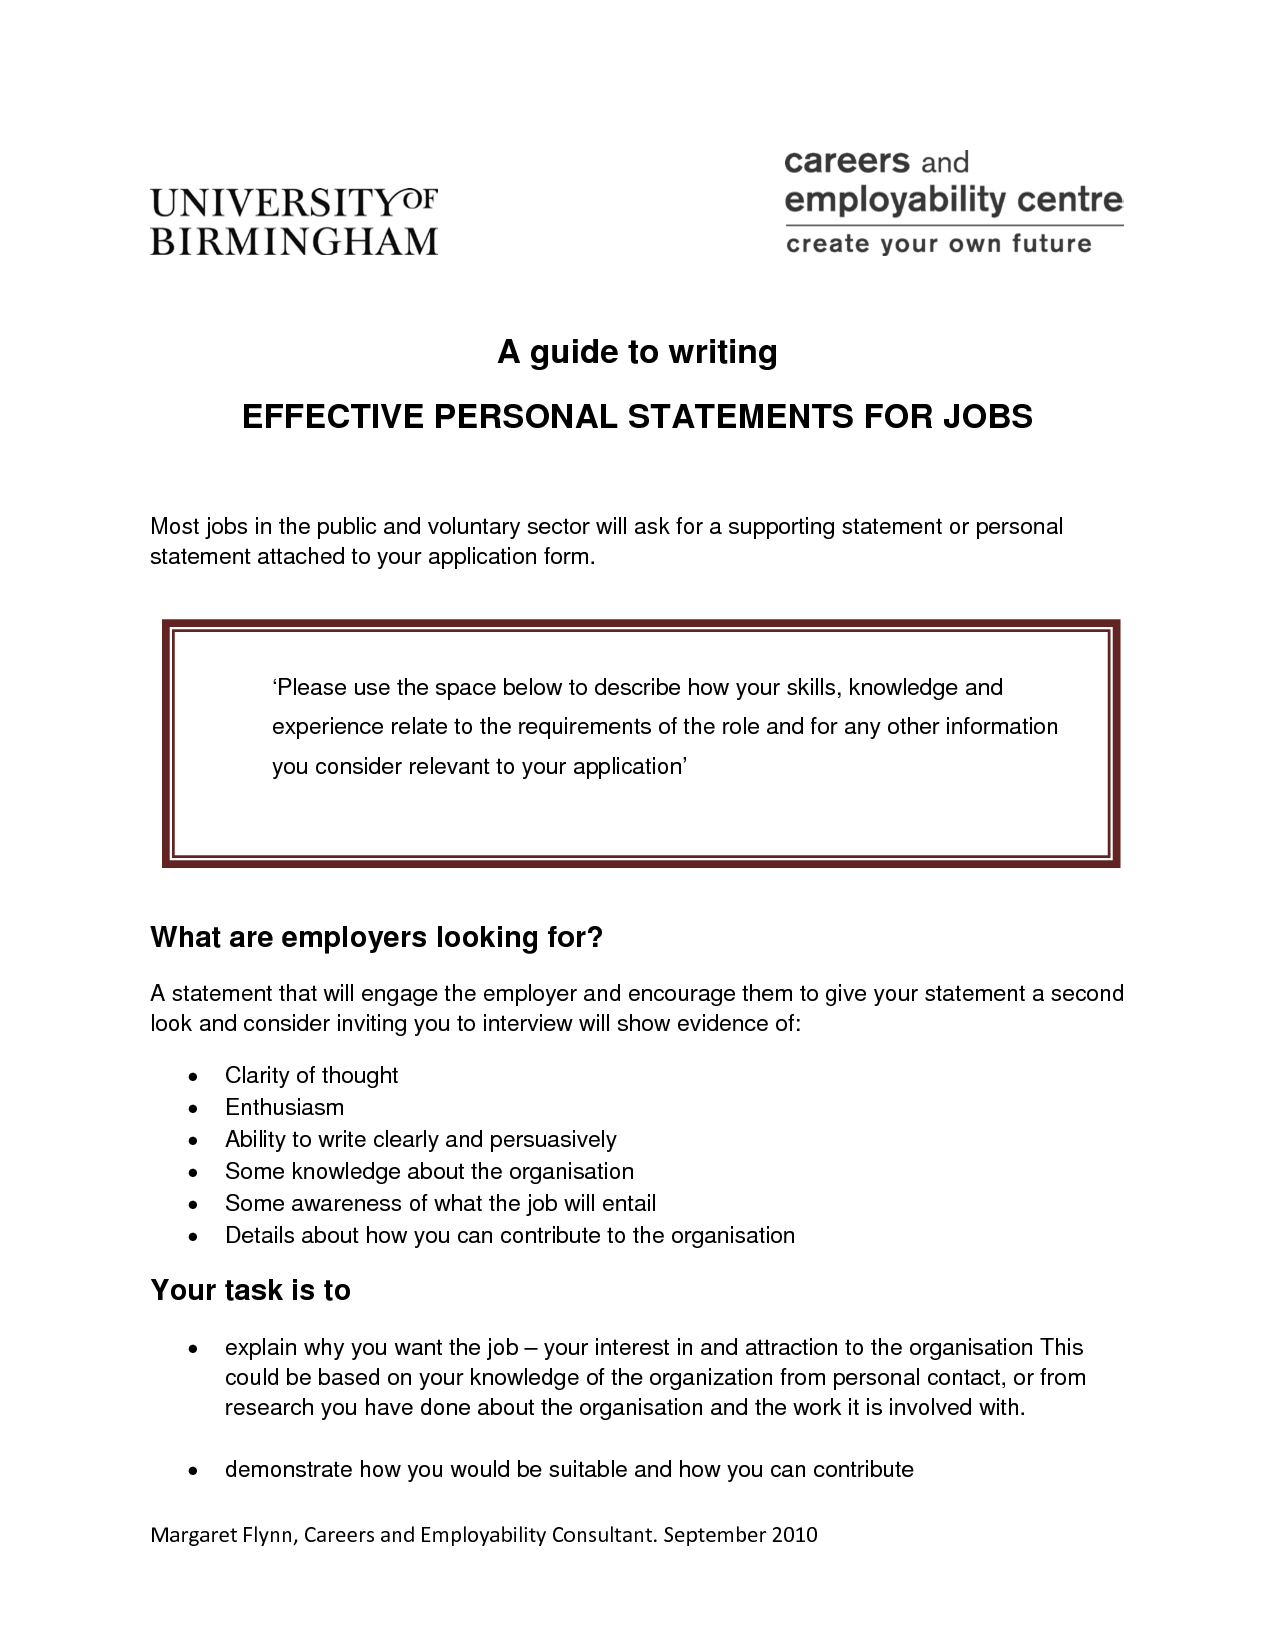 Personal statement university application sample